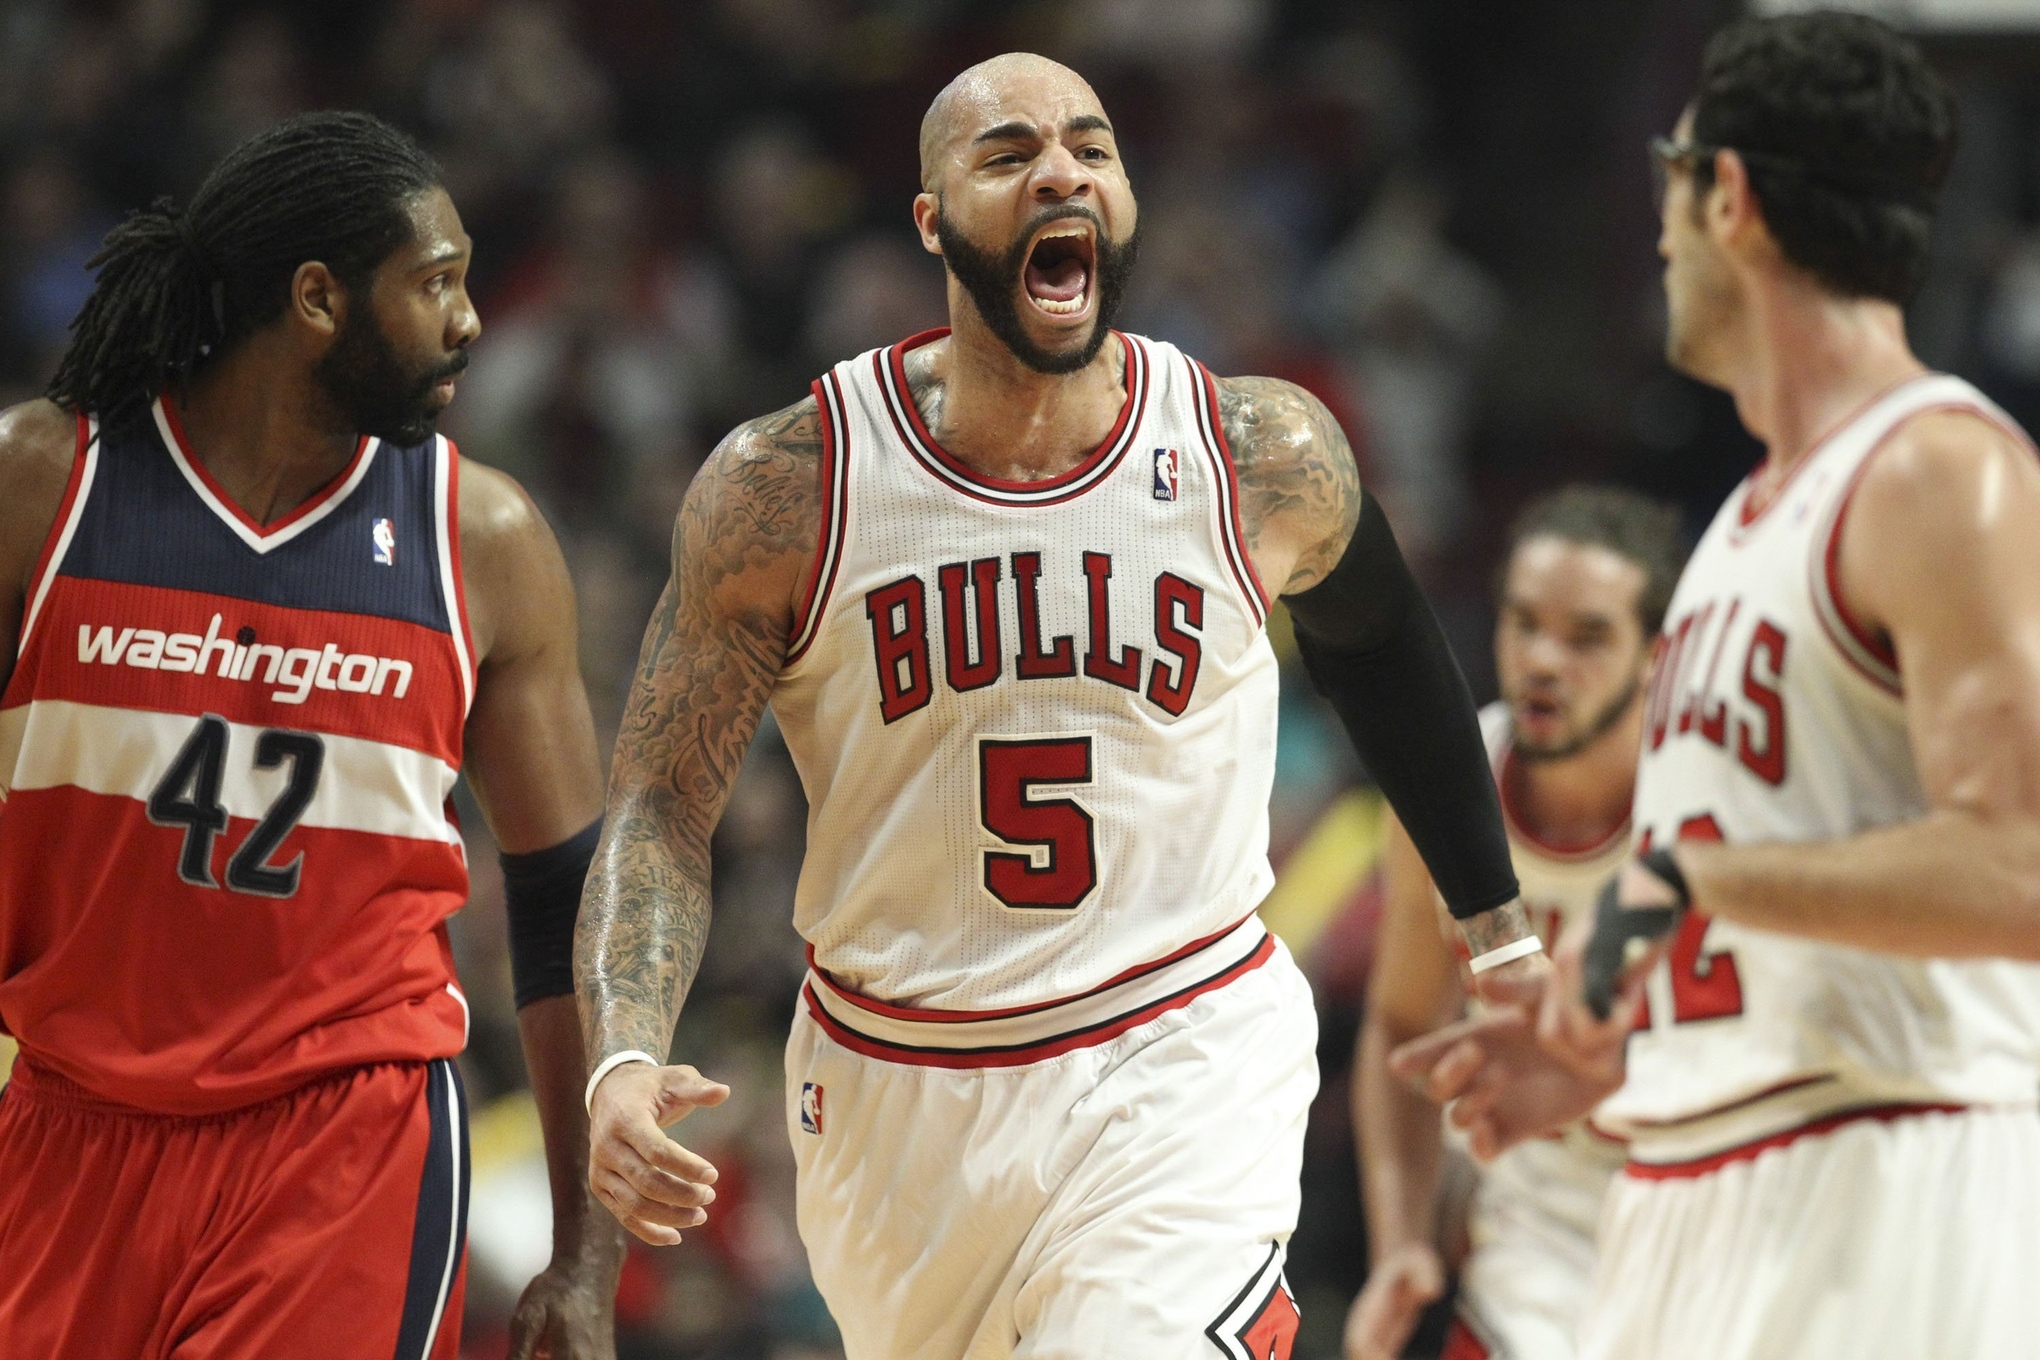 Carlos Boozer is too subdued these days SBNation